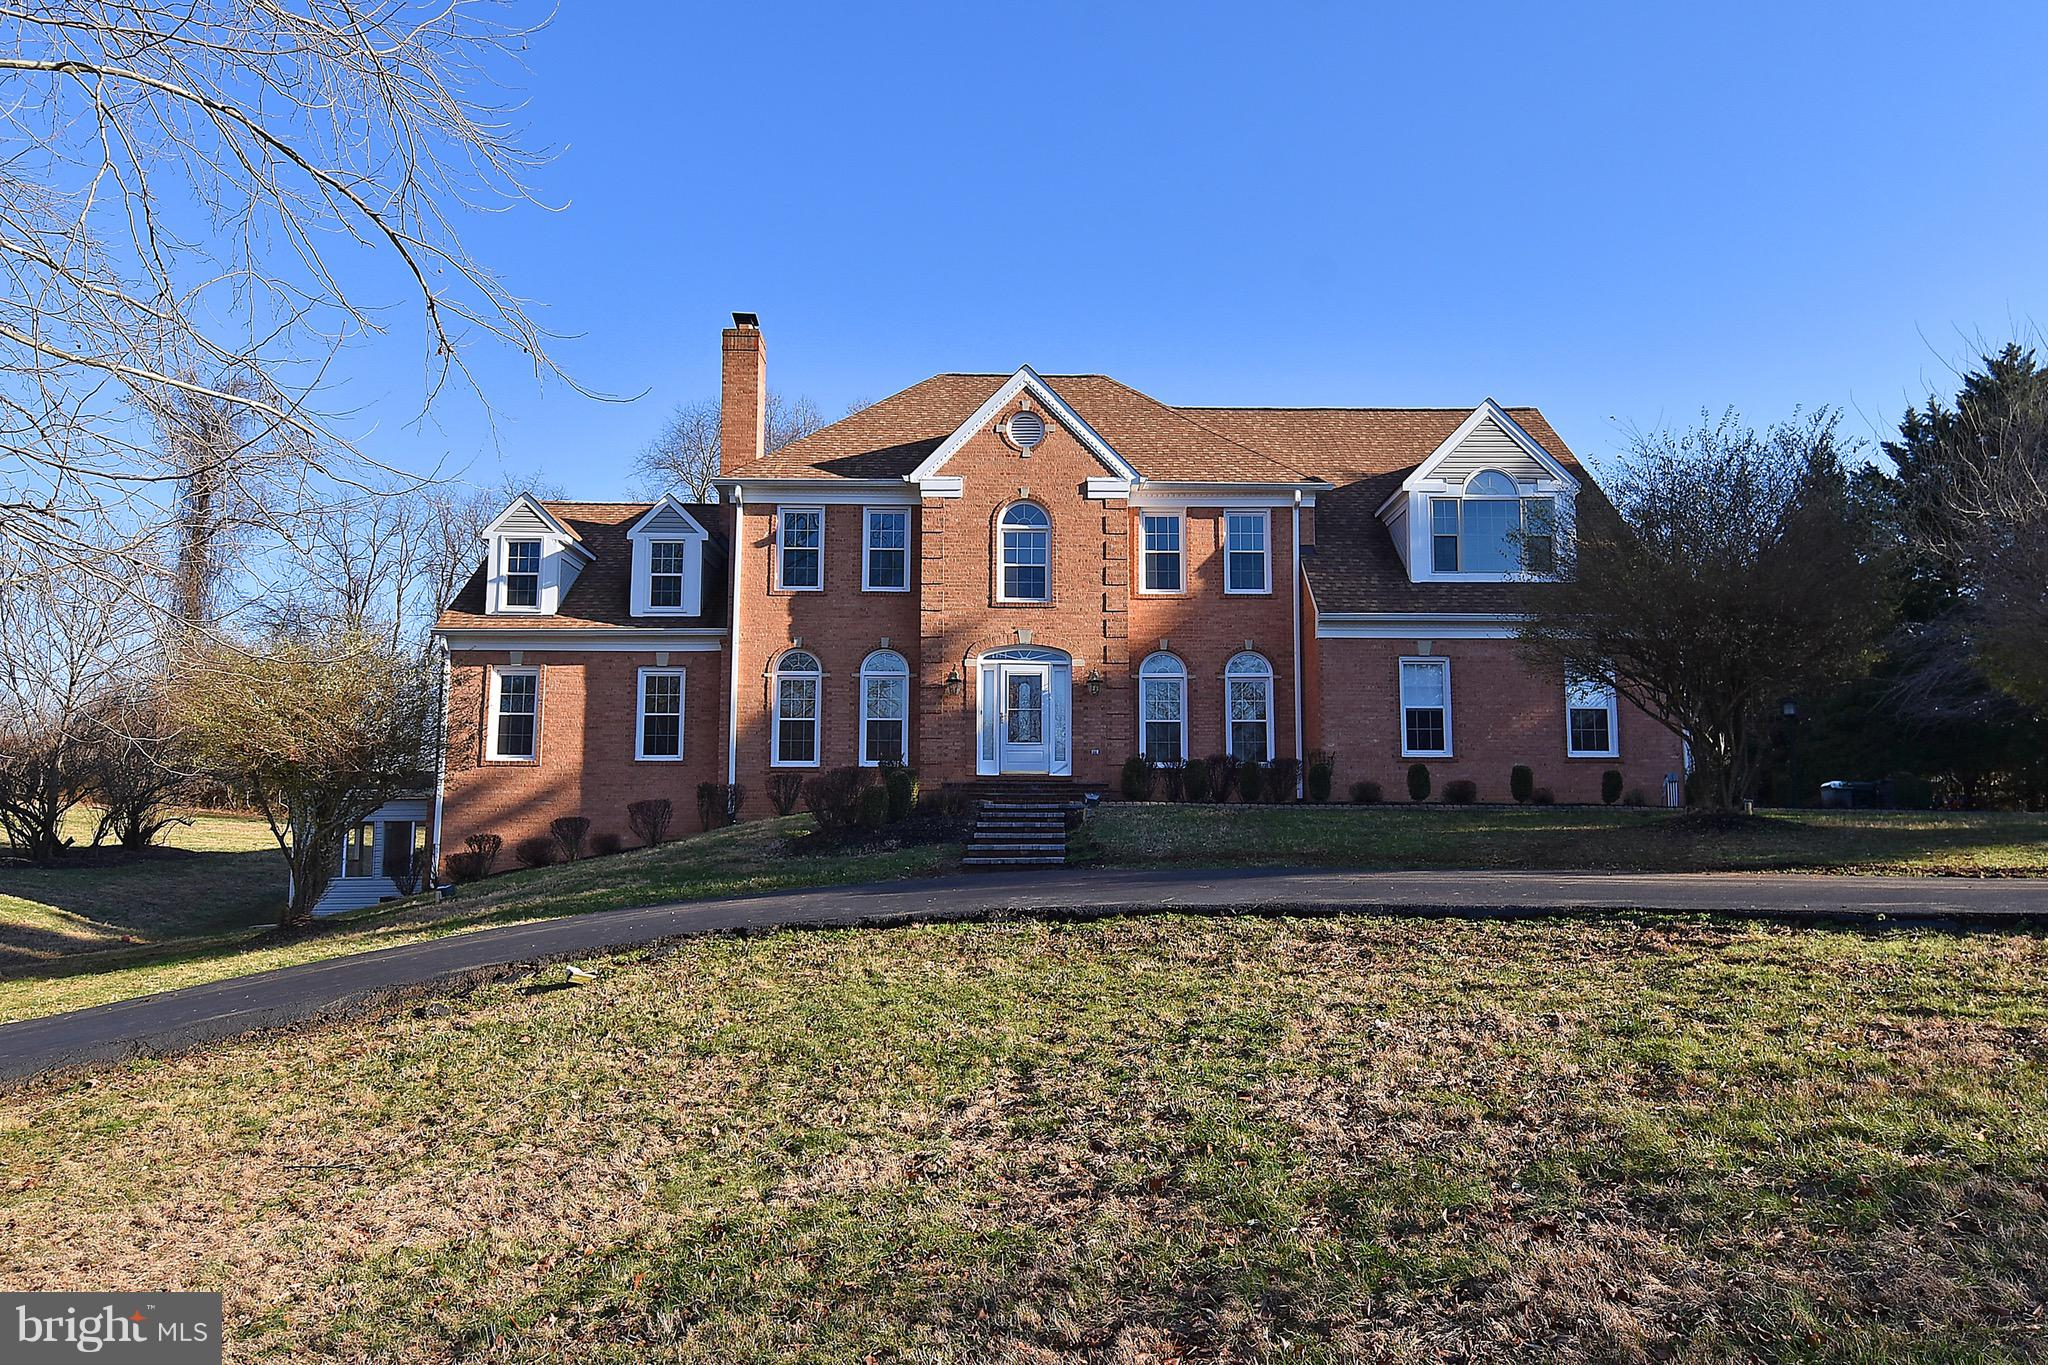 Spectacular Double Wing Brick front Georgian Colonial in the wonderful, classy, Windsor Gate community. Over 6 gorgeous acres!   A circular driveway welcomes you to this suburban oasis which offers 5 bedrooms, 4 full baths and 2 half baths. The high ceilings, light & bright interior and embassy sized rooms  are perfect for entertaining on a large or small scale. The main level offers a 30 foot high ceiling great room with vaulted ceilings,  plus 1st floor family room and library, with 3 fireplaces. . The large gourmet kitchen is sure to delight the most particular cook.. Upstairs offers a large master suite with sitting room, large walk in closet and stunning master bath with Luxury whirlpool tub and separate shower...  PlusThree  more large bedrooms and 2 full baths  and a large laundry  area. The lower level is completely finished with a bedroom, full bath, game room, office and florida room....Welcome home!!